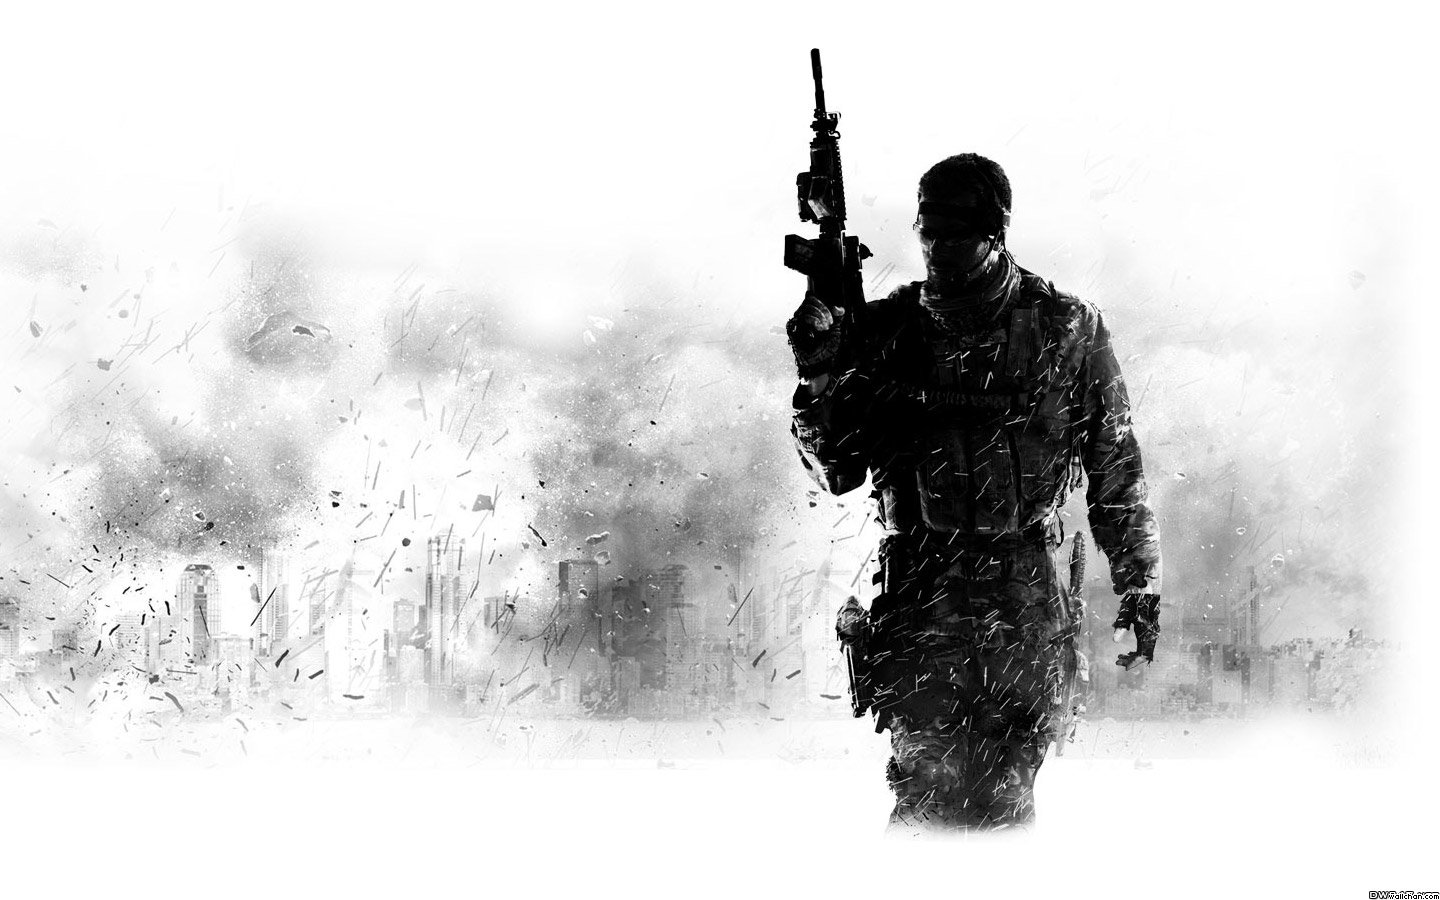 call of duty mw3 wallpaper 1 call of duty mw3 wallpaper 2 call of duty 1440x900